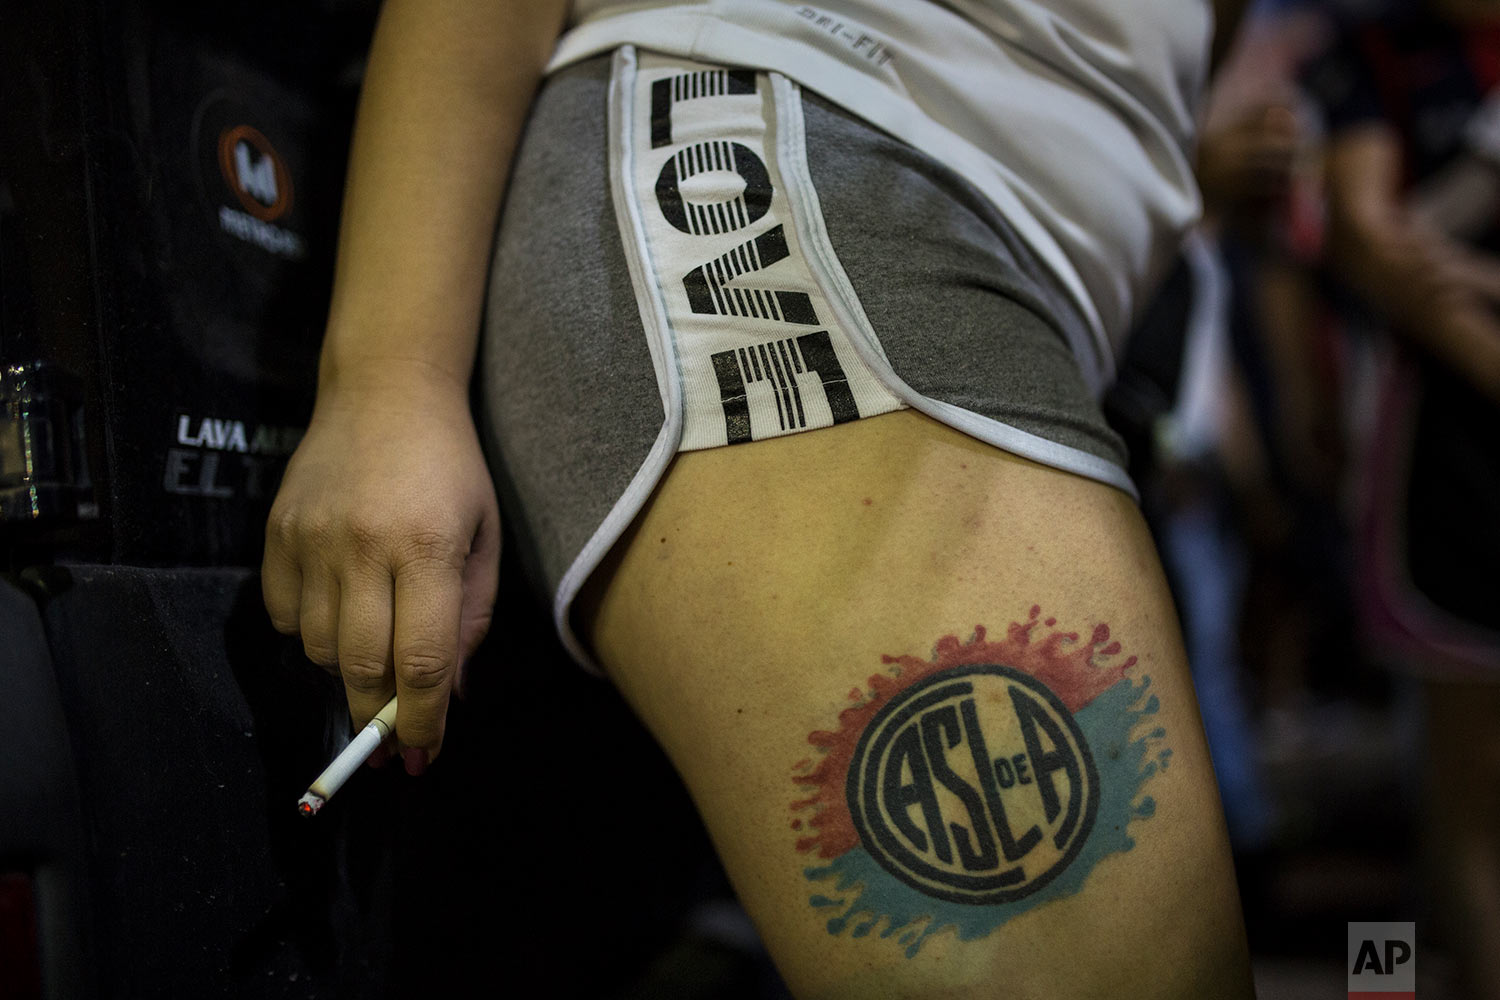 """In this April 21, 2018 photo, a woman sporting a San Lorenzo soccer team tattoo smokes a cigarette during a gathering of the """"Cuervos del Oeste"""" neighborhood fan club before a match between their team and Chacarita outside the stadium in Buenos Aires, Argentina. (AP Photo/Rodrigo Abd)"""